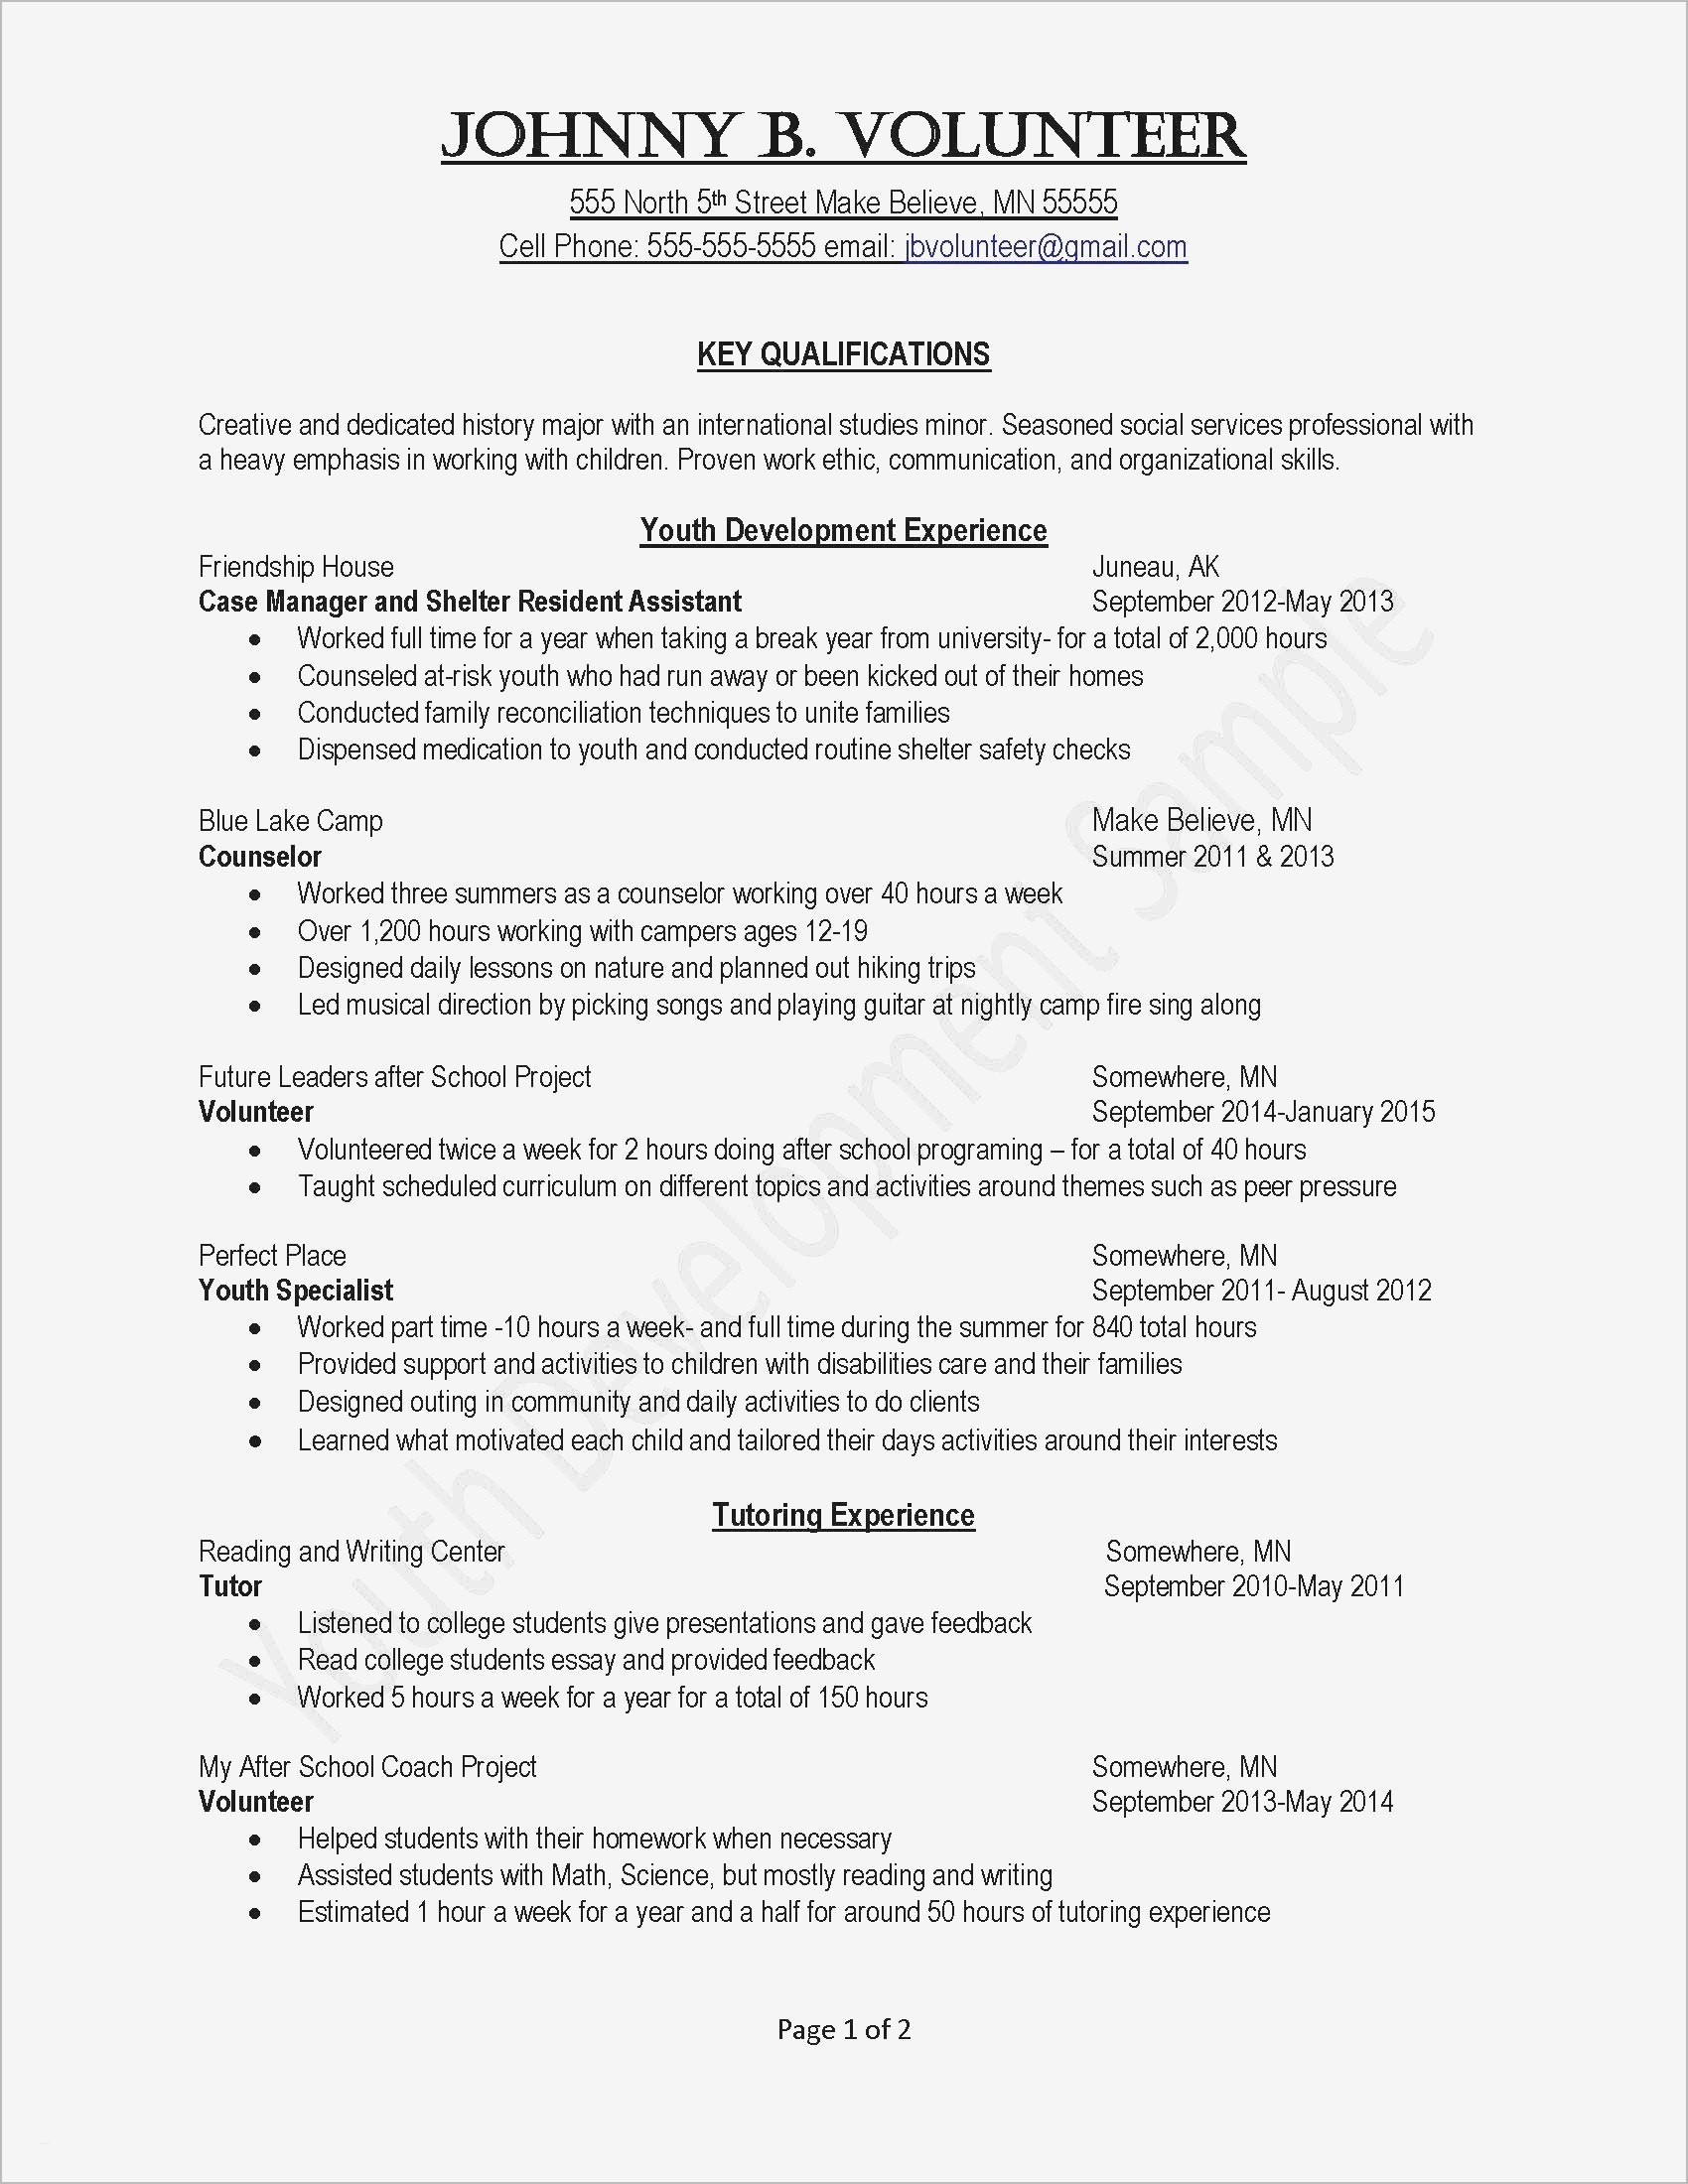 create cover letter template example-How To Make A Professional Cover Letter New Cfo Resume Template Inspirational Actor Resumes 0d – Letter Templates 16-n